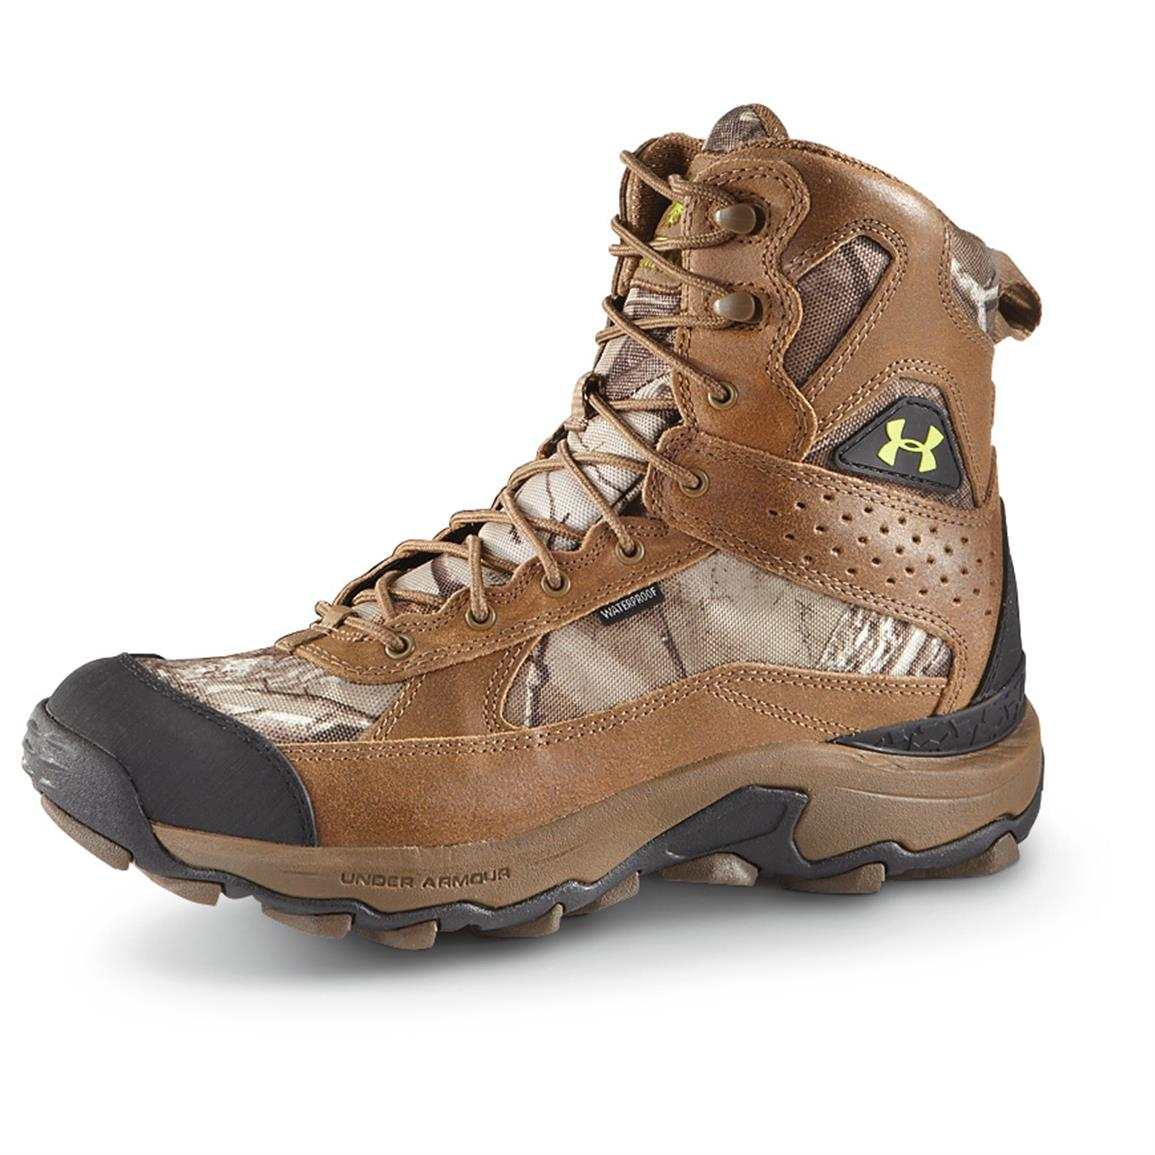 Under Armour® Men's Speed Freeks Bozeman Boots, Realtree AP Xtra